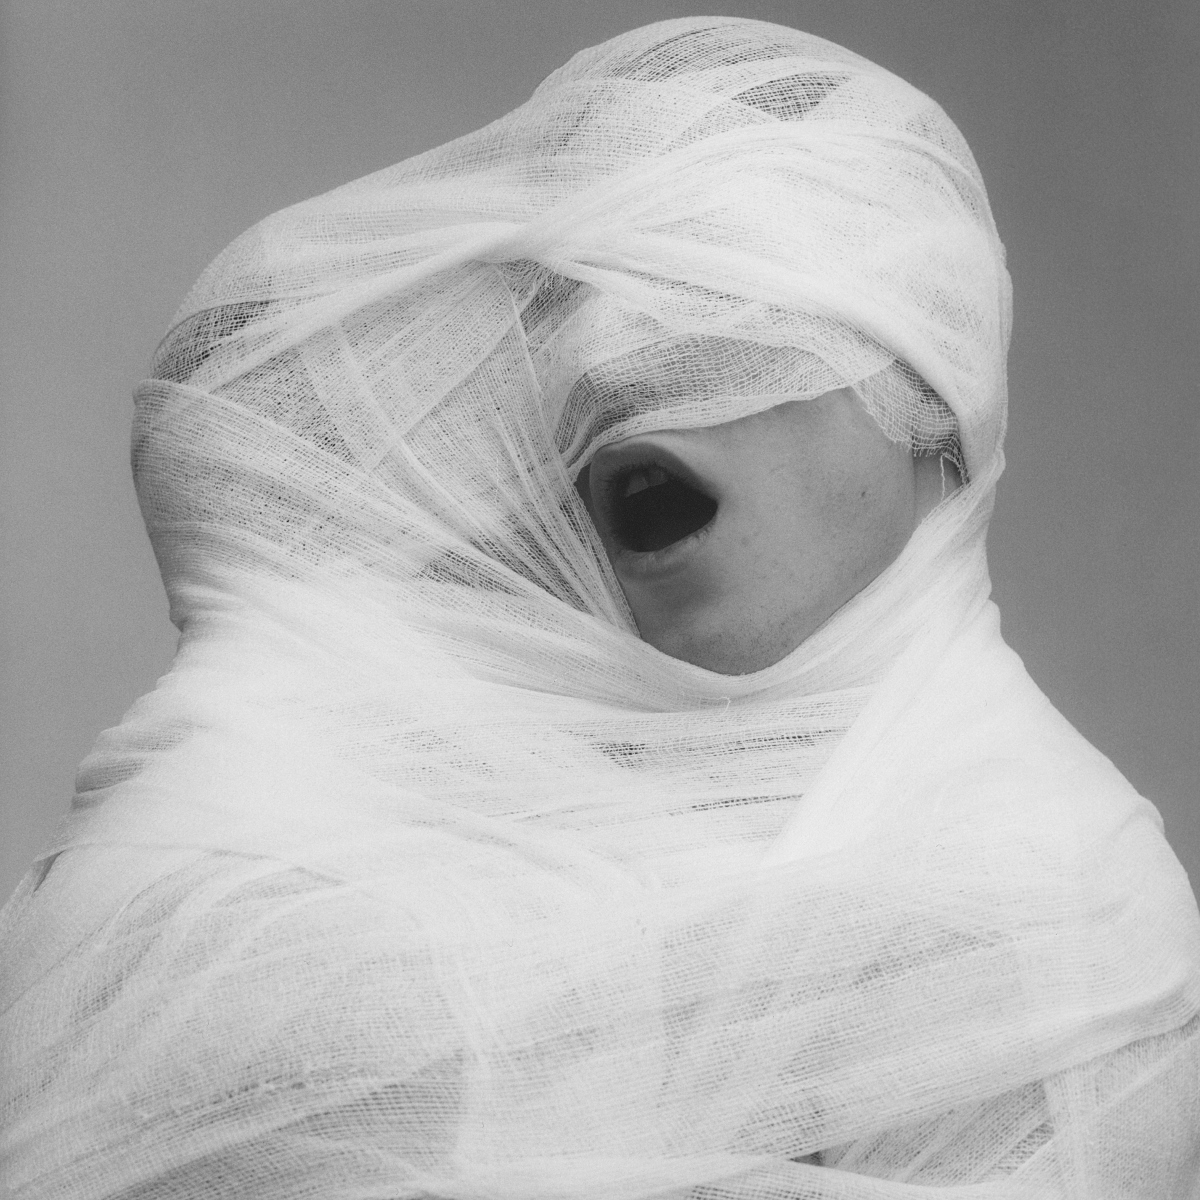 Robert Mapplethorpe, White Gauze, 1984 © Robert Mapplethorpe Foundation. Used by Permission